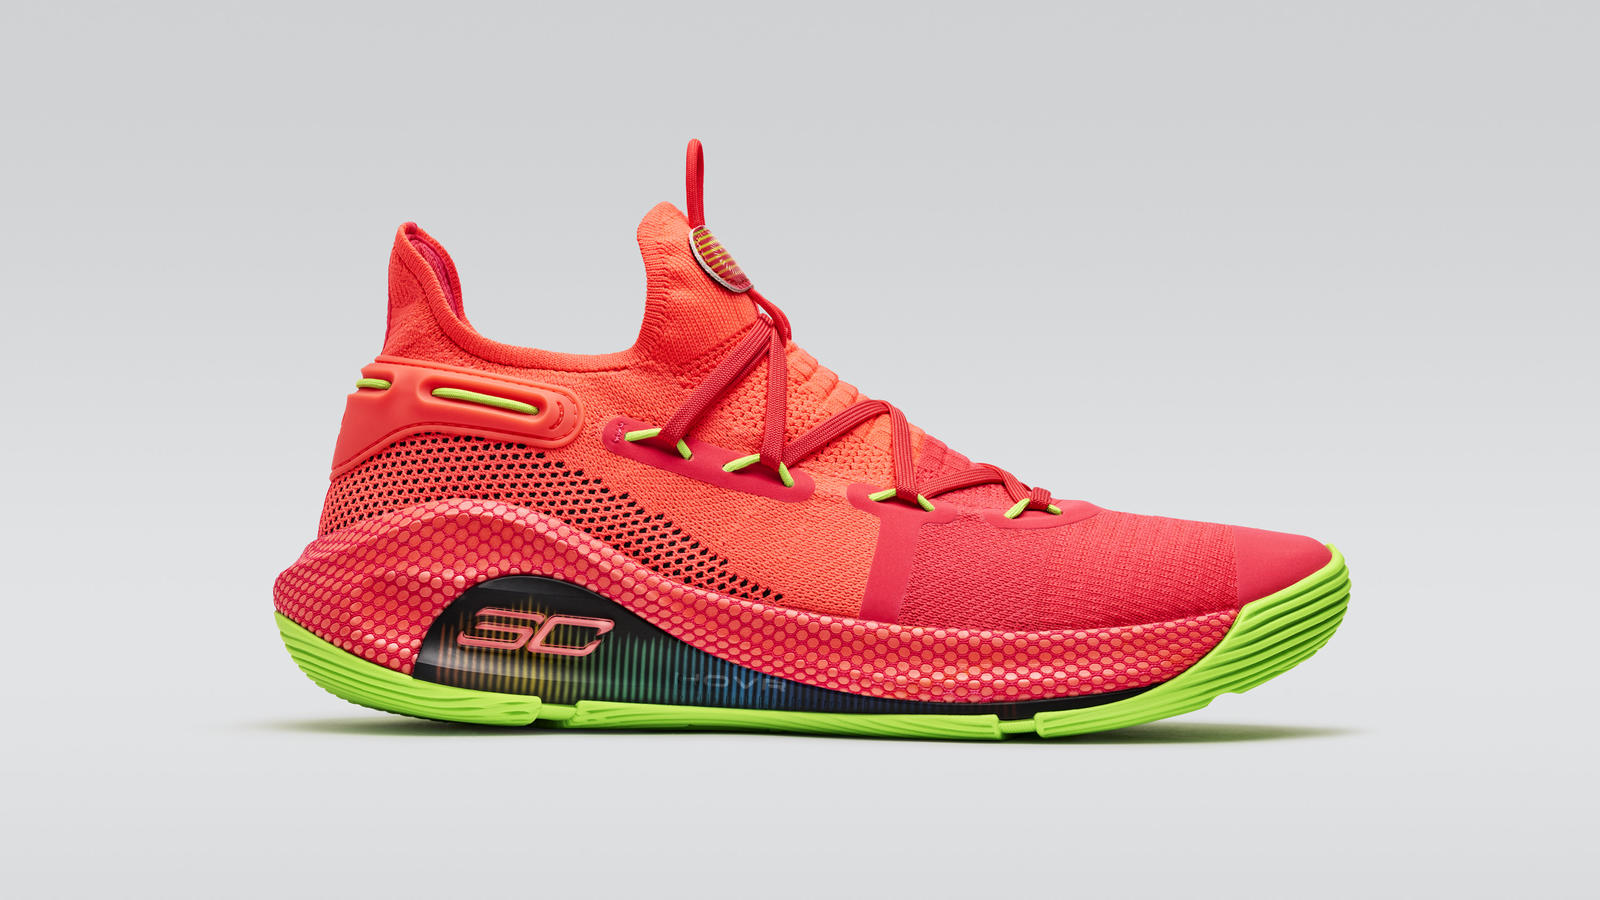 Steph Curry's new sneakers drop today